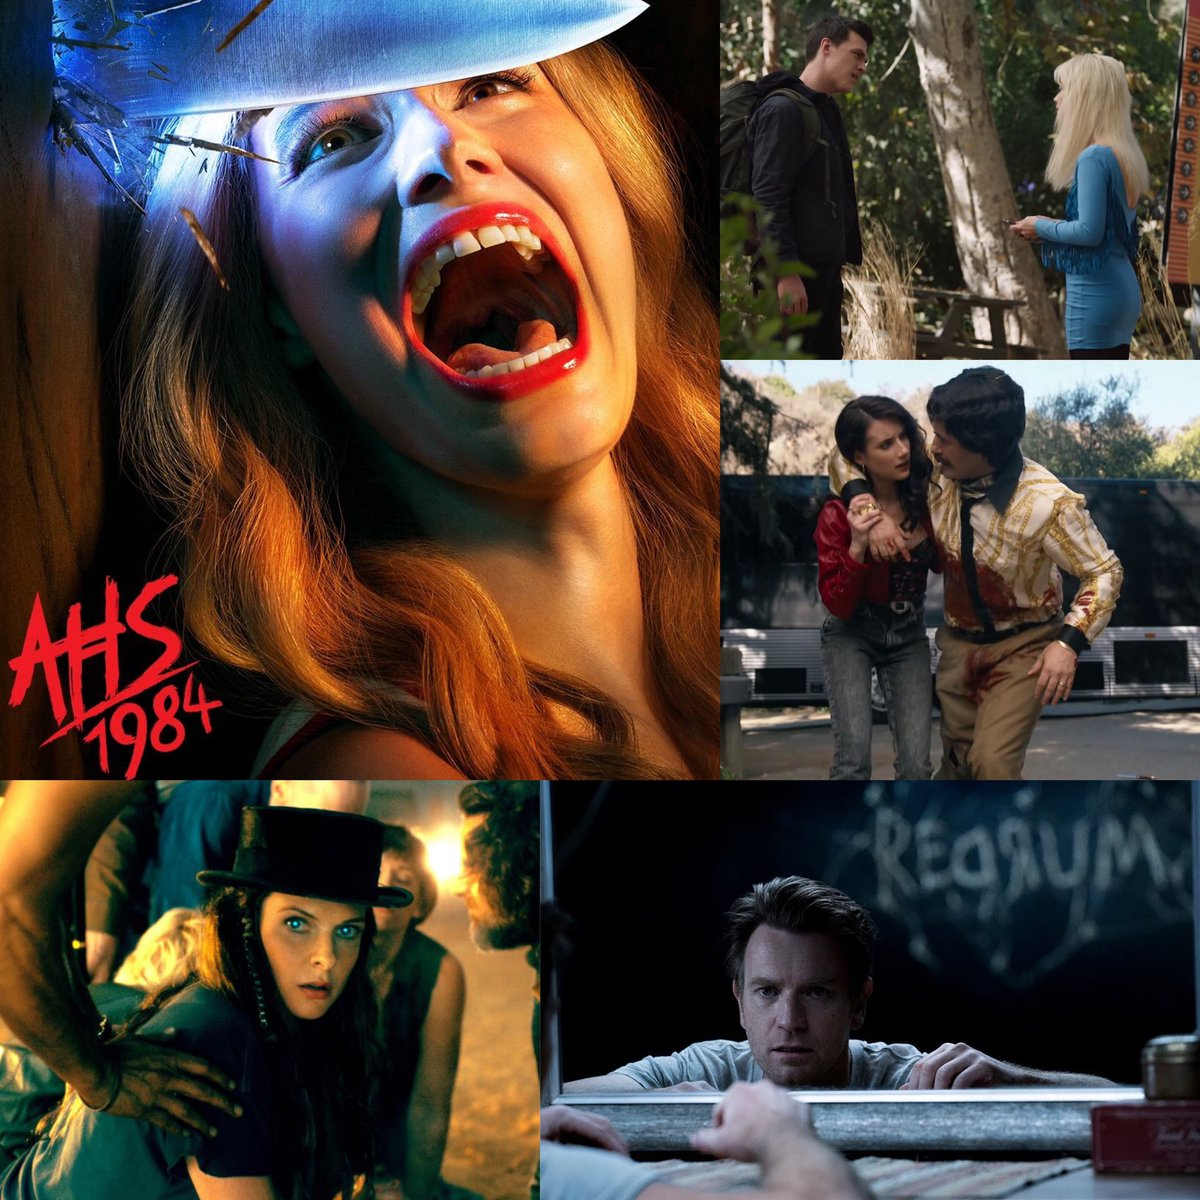 Our new episode is up! We say our final goodbyes to #CampRedwood and give you our thoughts on the #AHS1984 finale. We also review #DoctorSleepMovie! Let us know how you felt about #FinalGirl and if you thought #TheShining sequel held up. 🔪  https://tinyurl.com/ub2663s